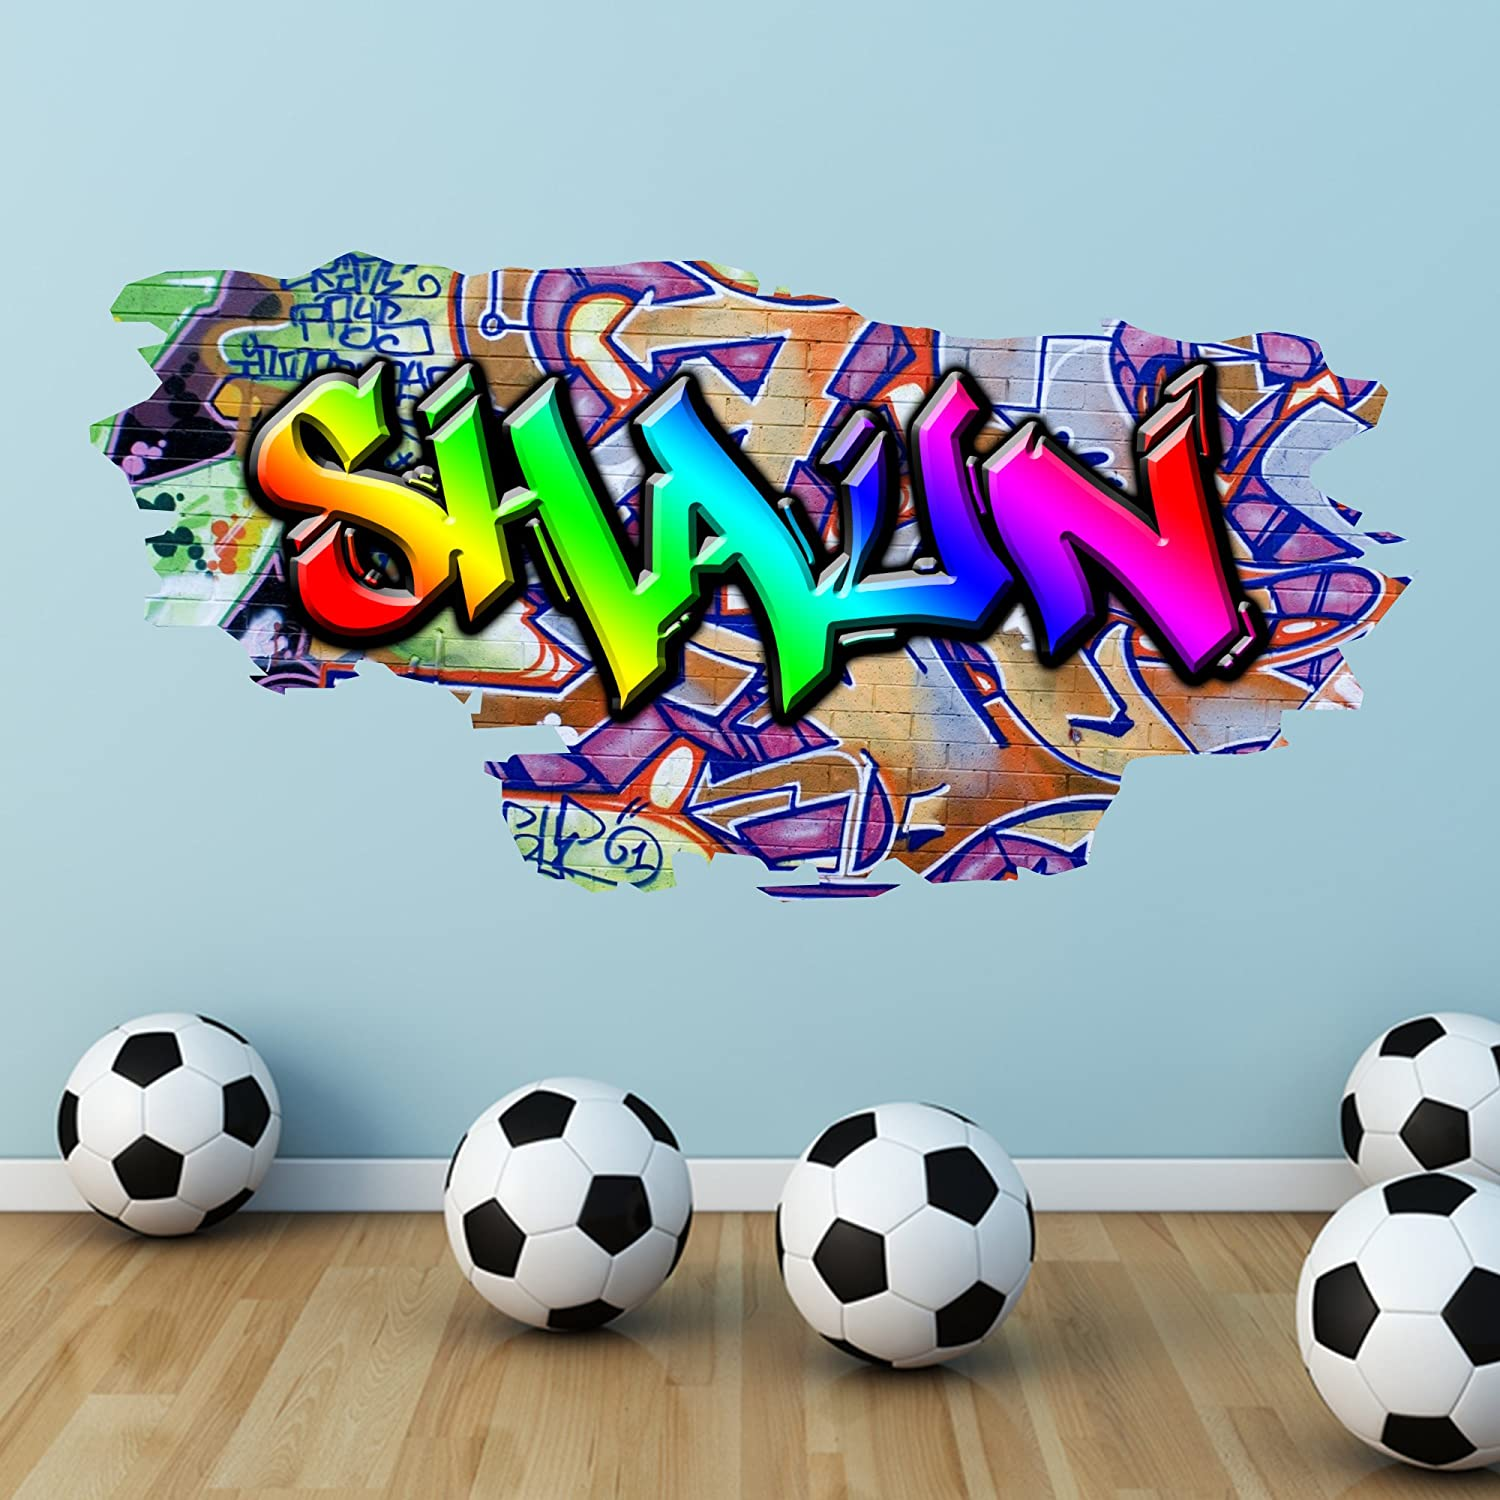 Amazon.com MULTI FULL COLOUR PERSONALISED GRAFFITI NAME Brick Wall Sticker Decal Graphic bedroom transfer mural print by Wall Smart Designs Home u0026 Kitchen & Amazon.com: MULTI FULL COLOUR PERSONALISED GRAFFITI NAME Brick Wall ...